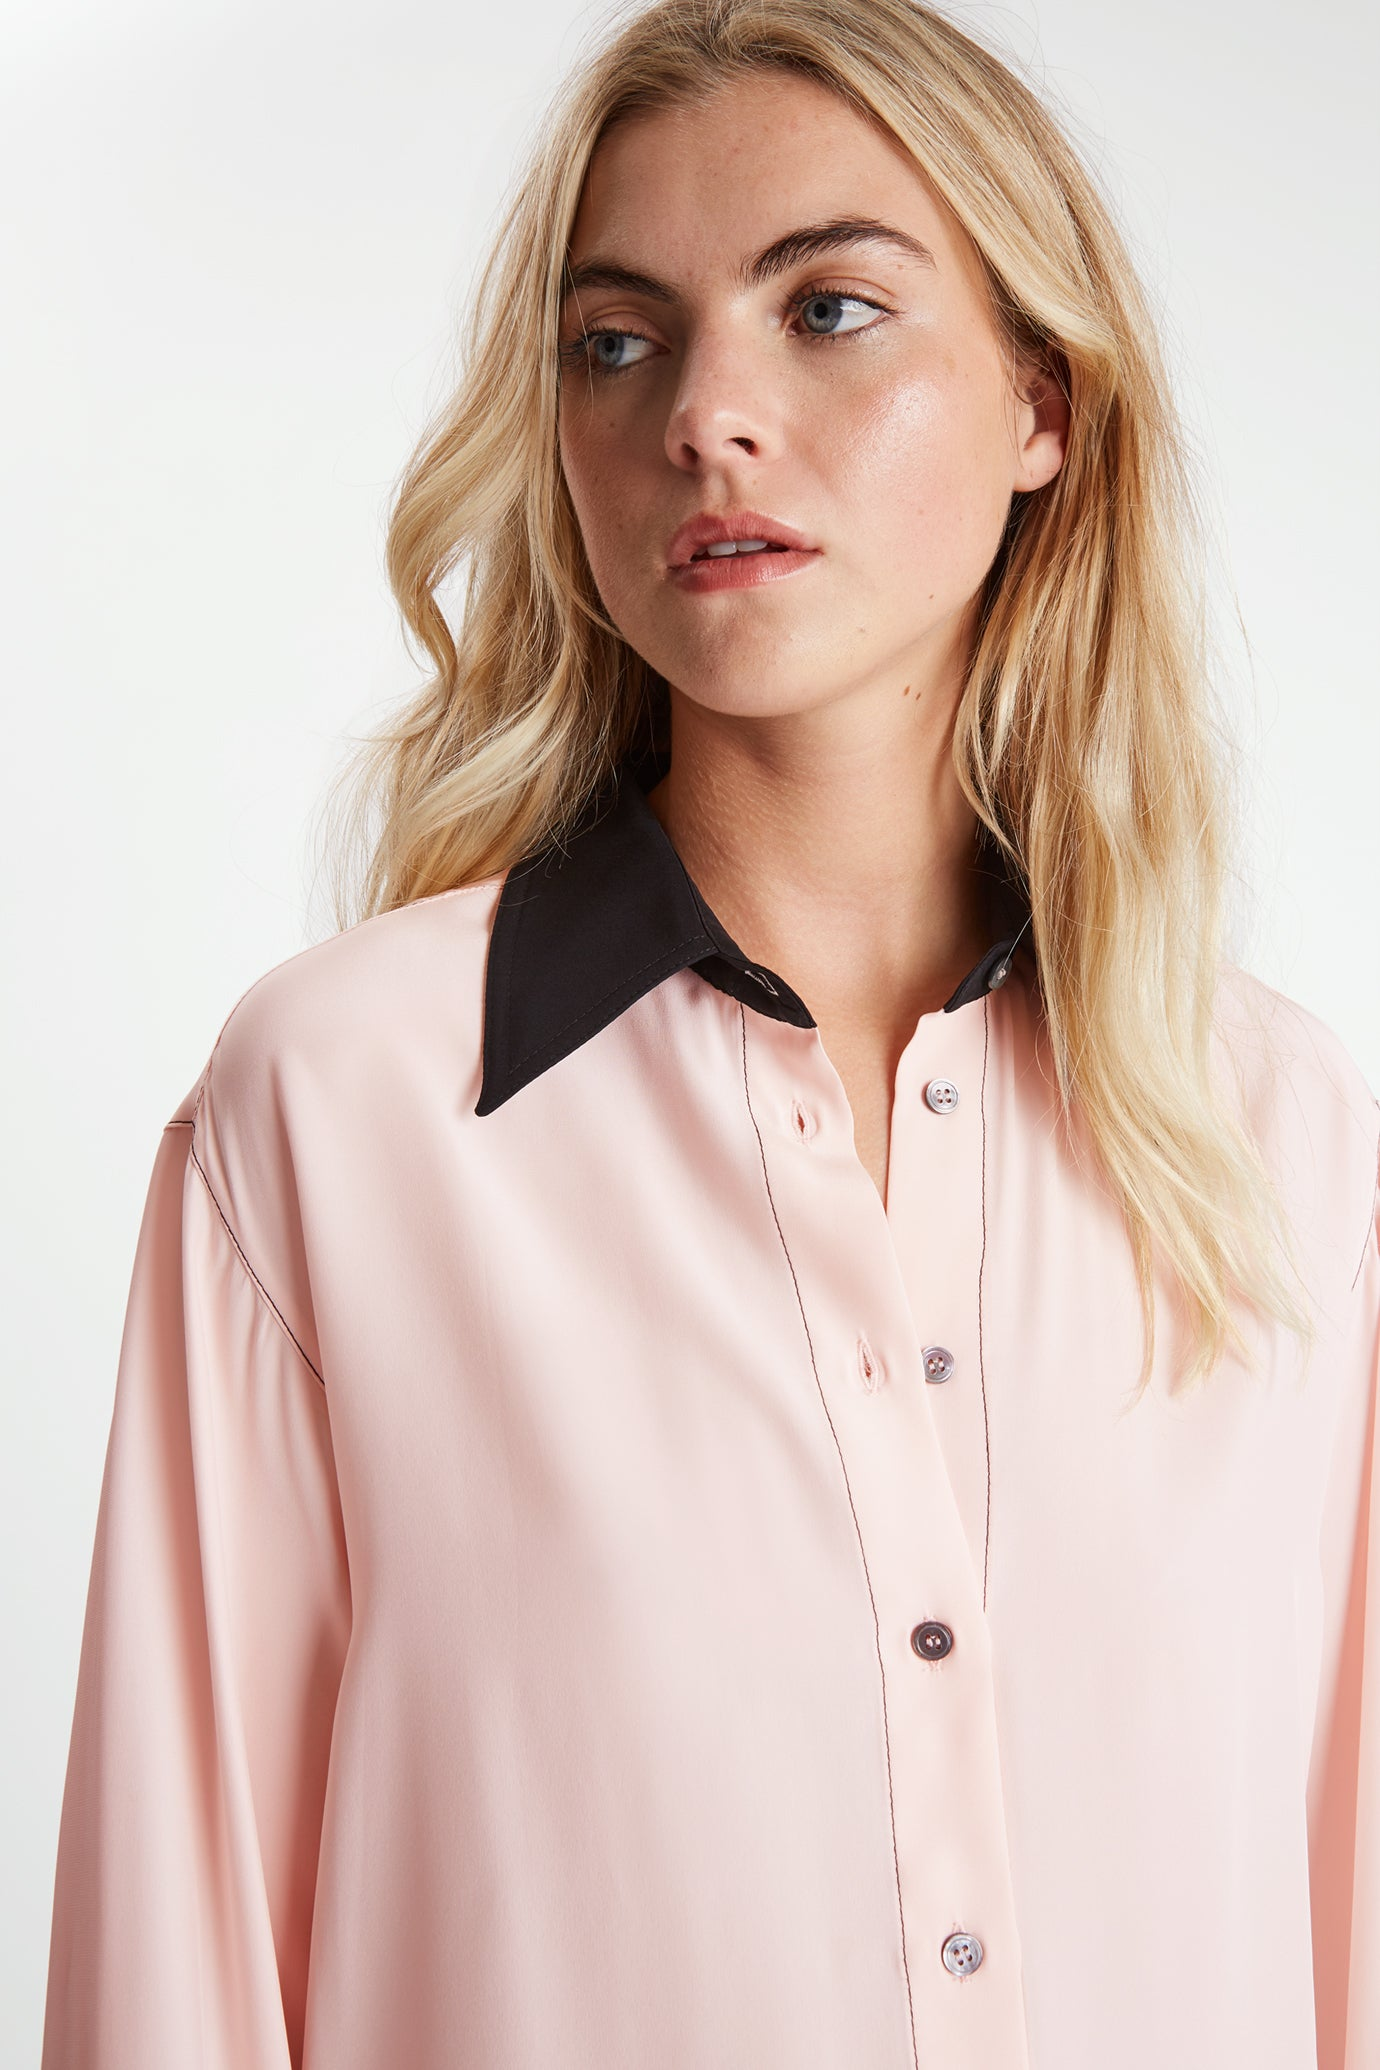 The Oversized Shirt - Pale Pink & Black - SERENA BUTE